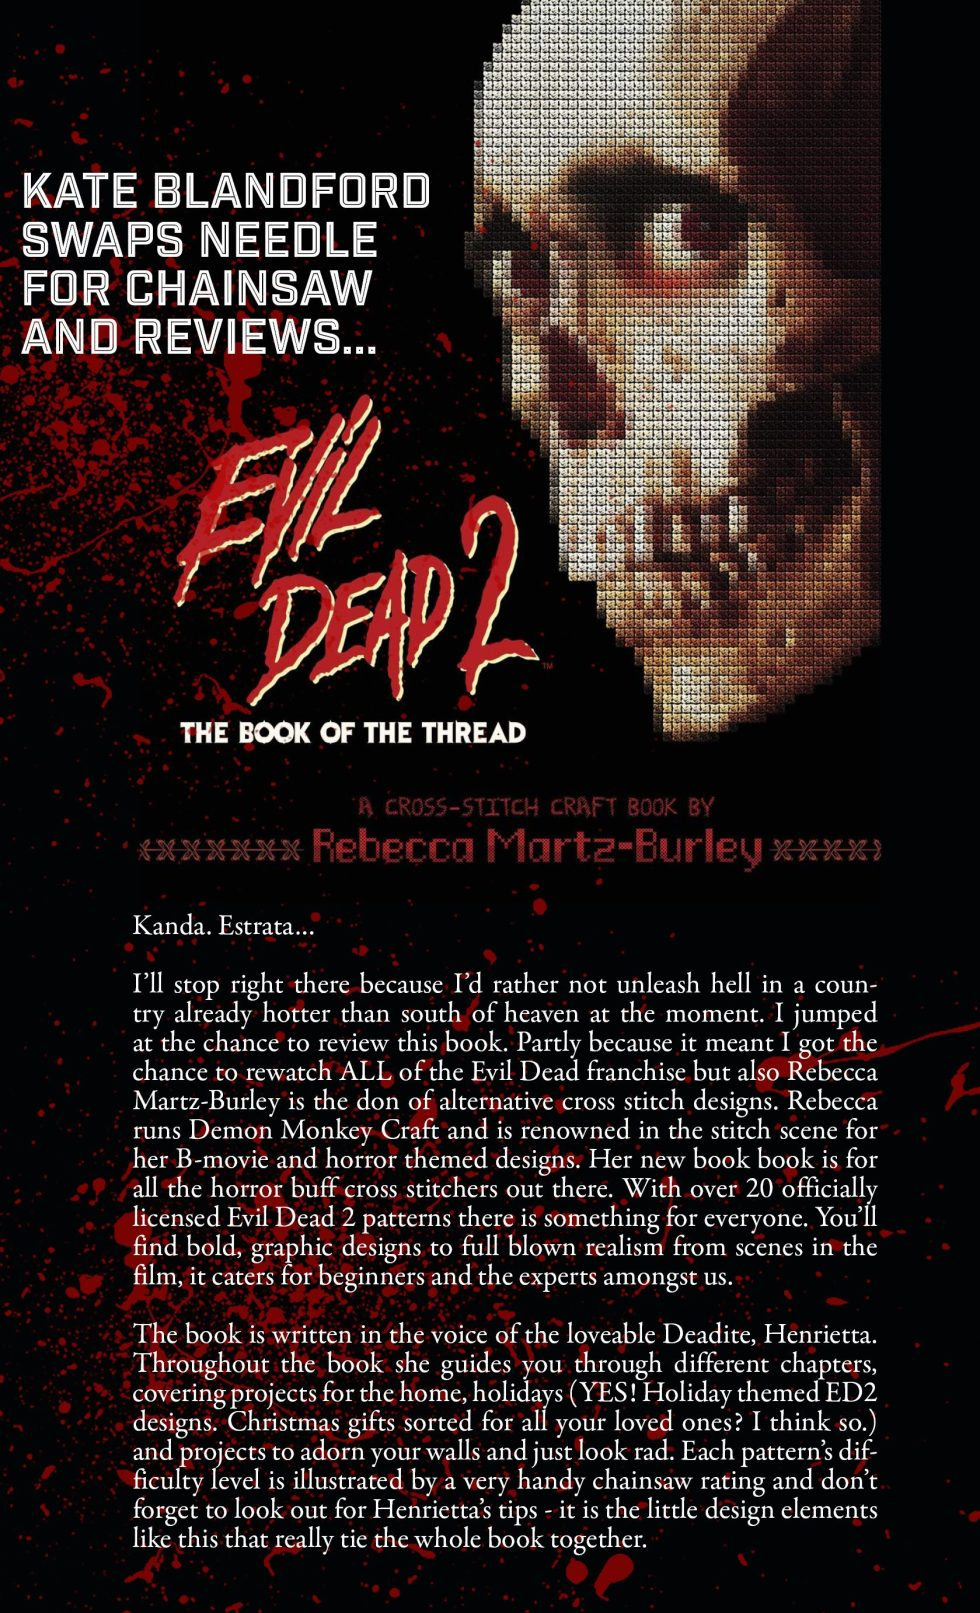 Kate Blandford reviews Evil Dead 2: Book of the Thread by Rebecca Martz-Burley